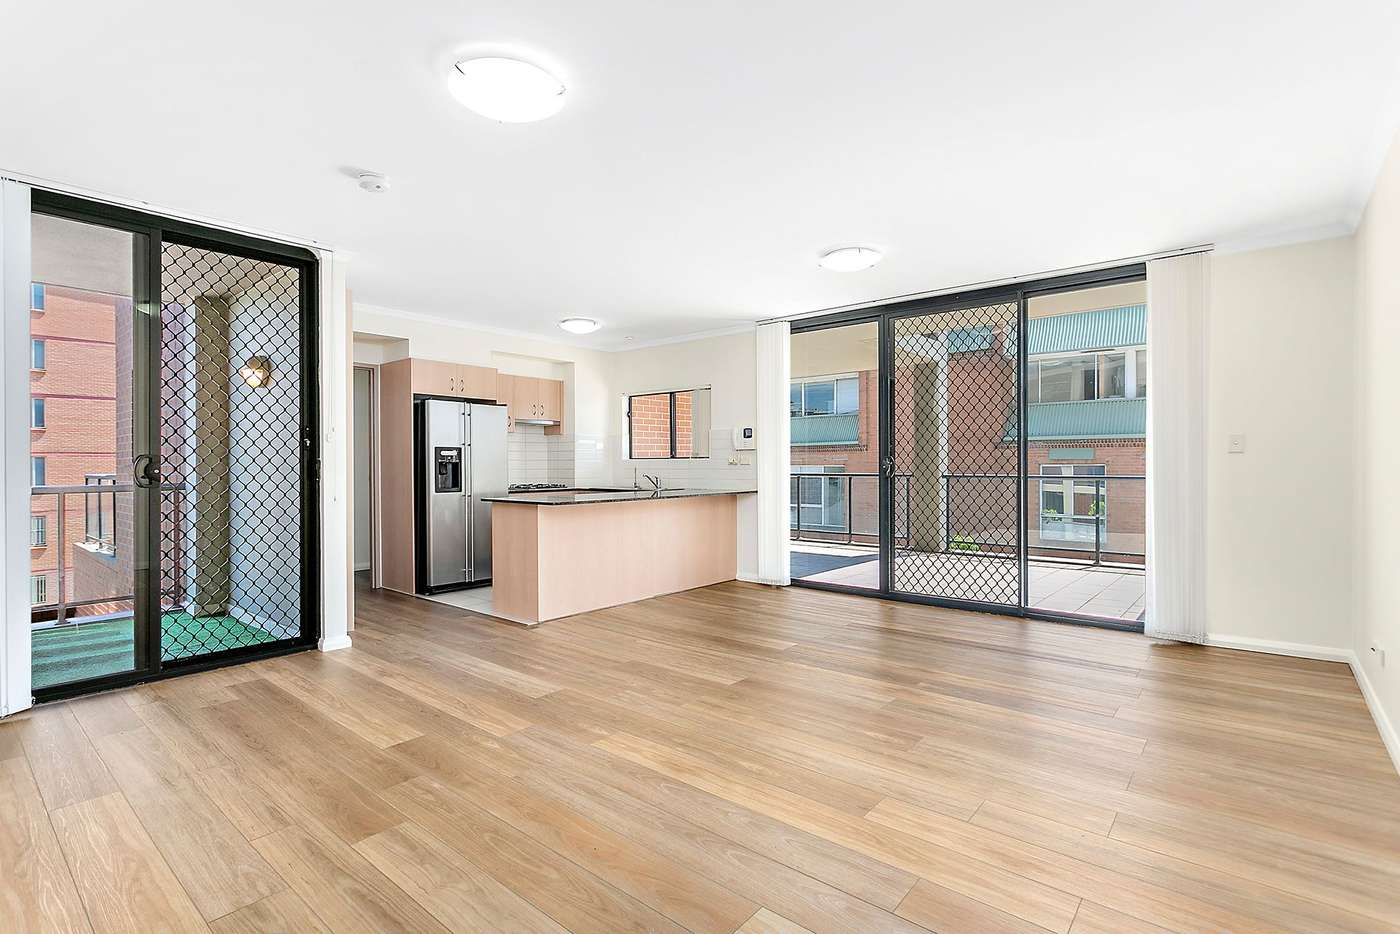 Main view of Homely apartment listing, 6/52 Bay Street, Rockdale NSW 2216